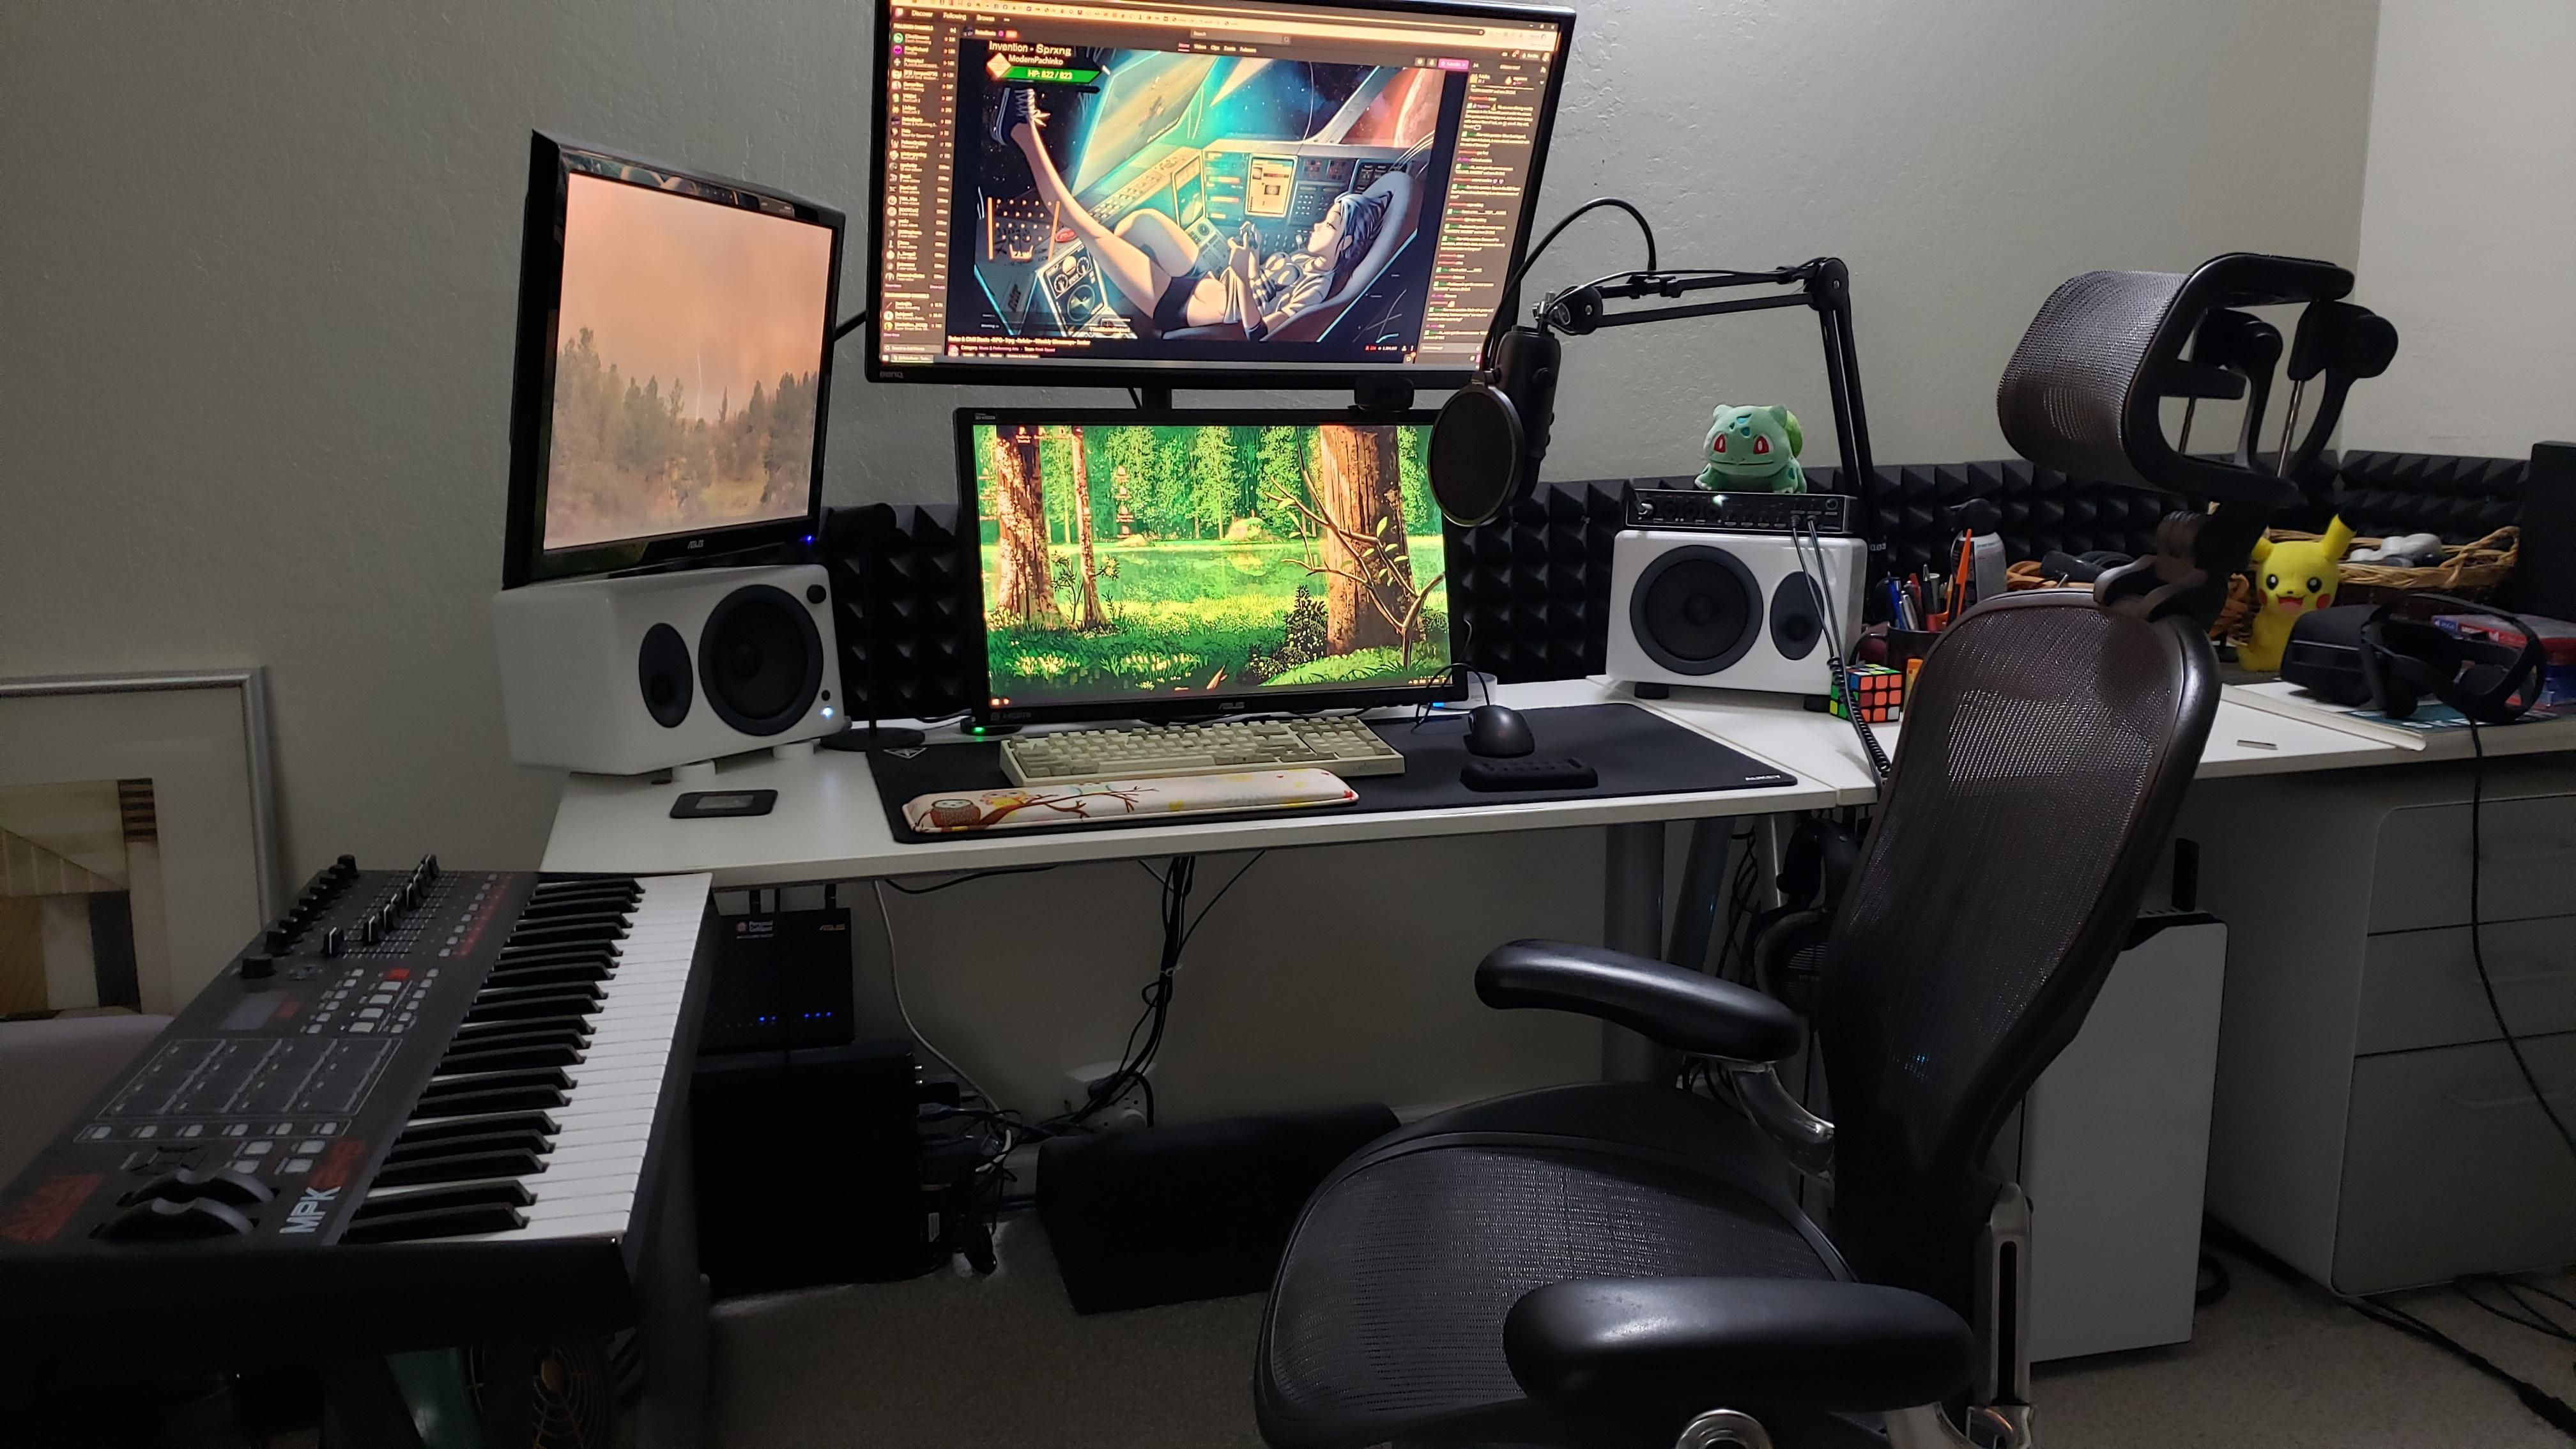 where I play battlefield V and watch twitch streams